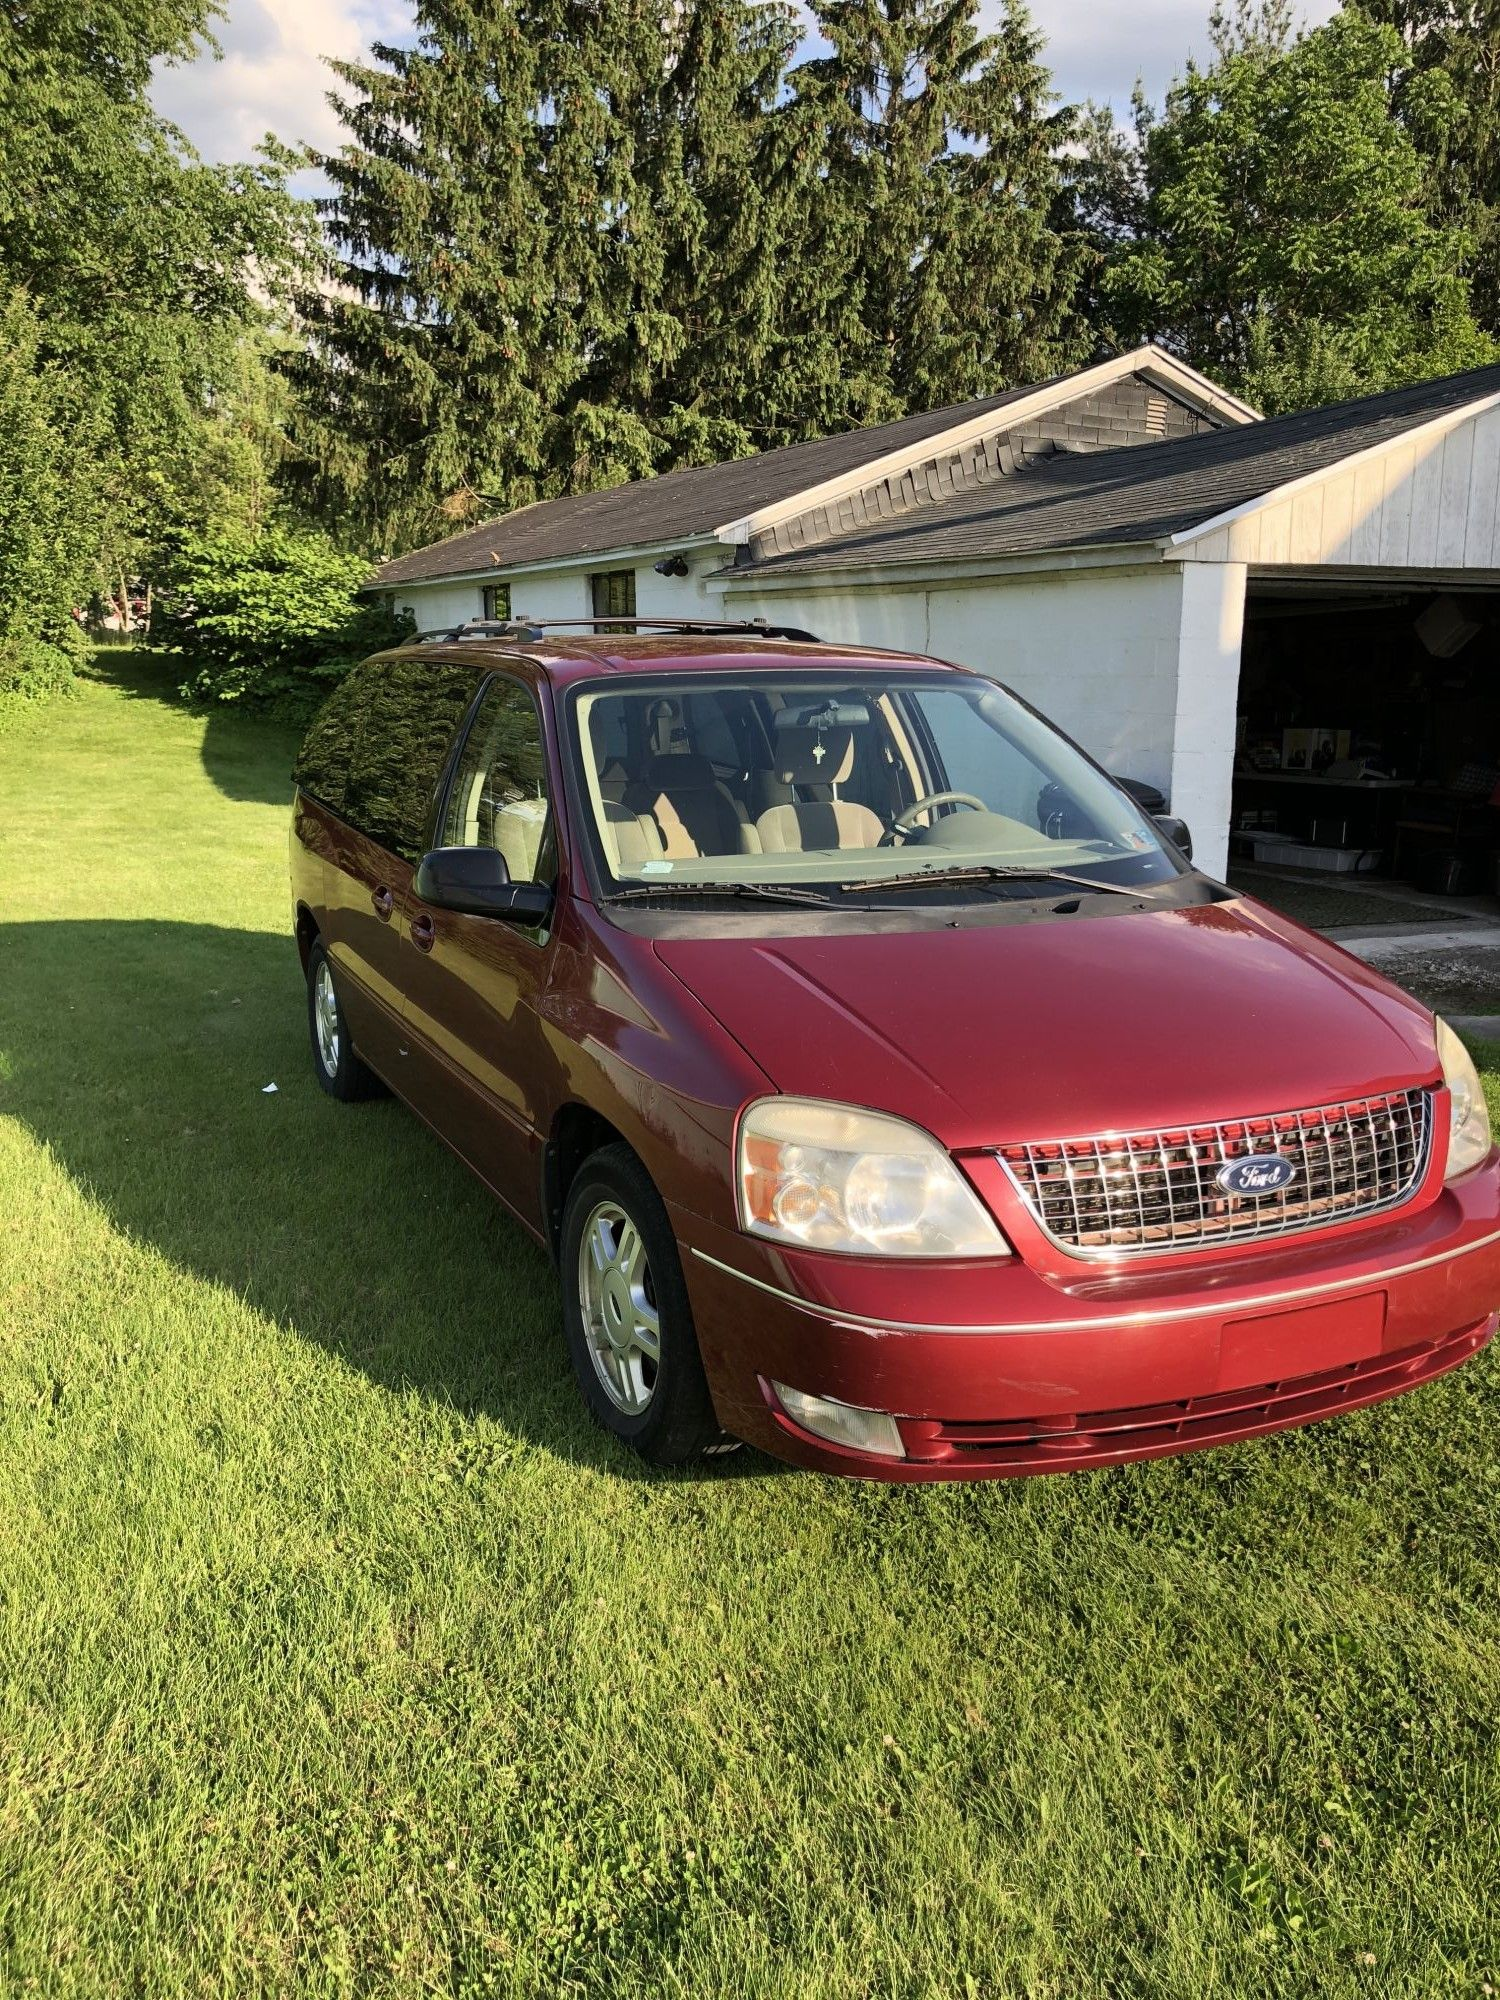 2005 ford freestar sel for sale cars trucks paper shop free classifieds